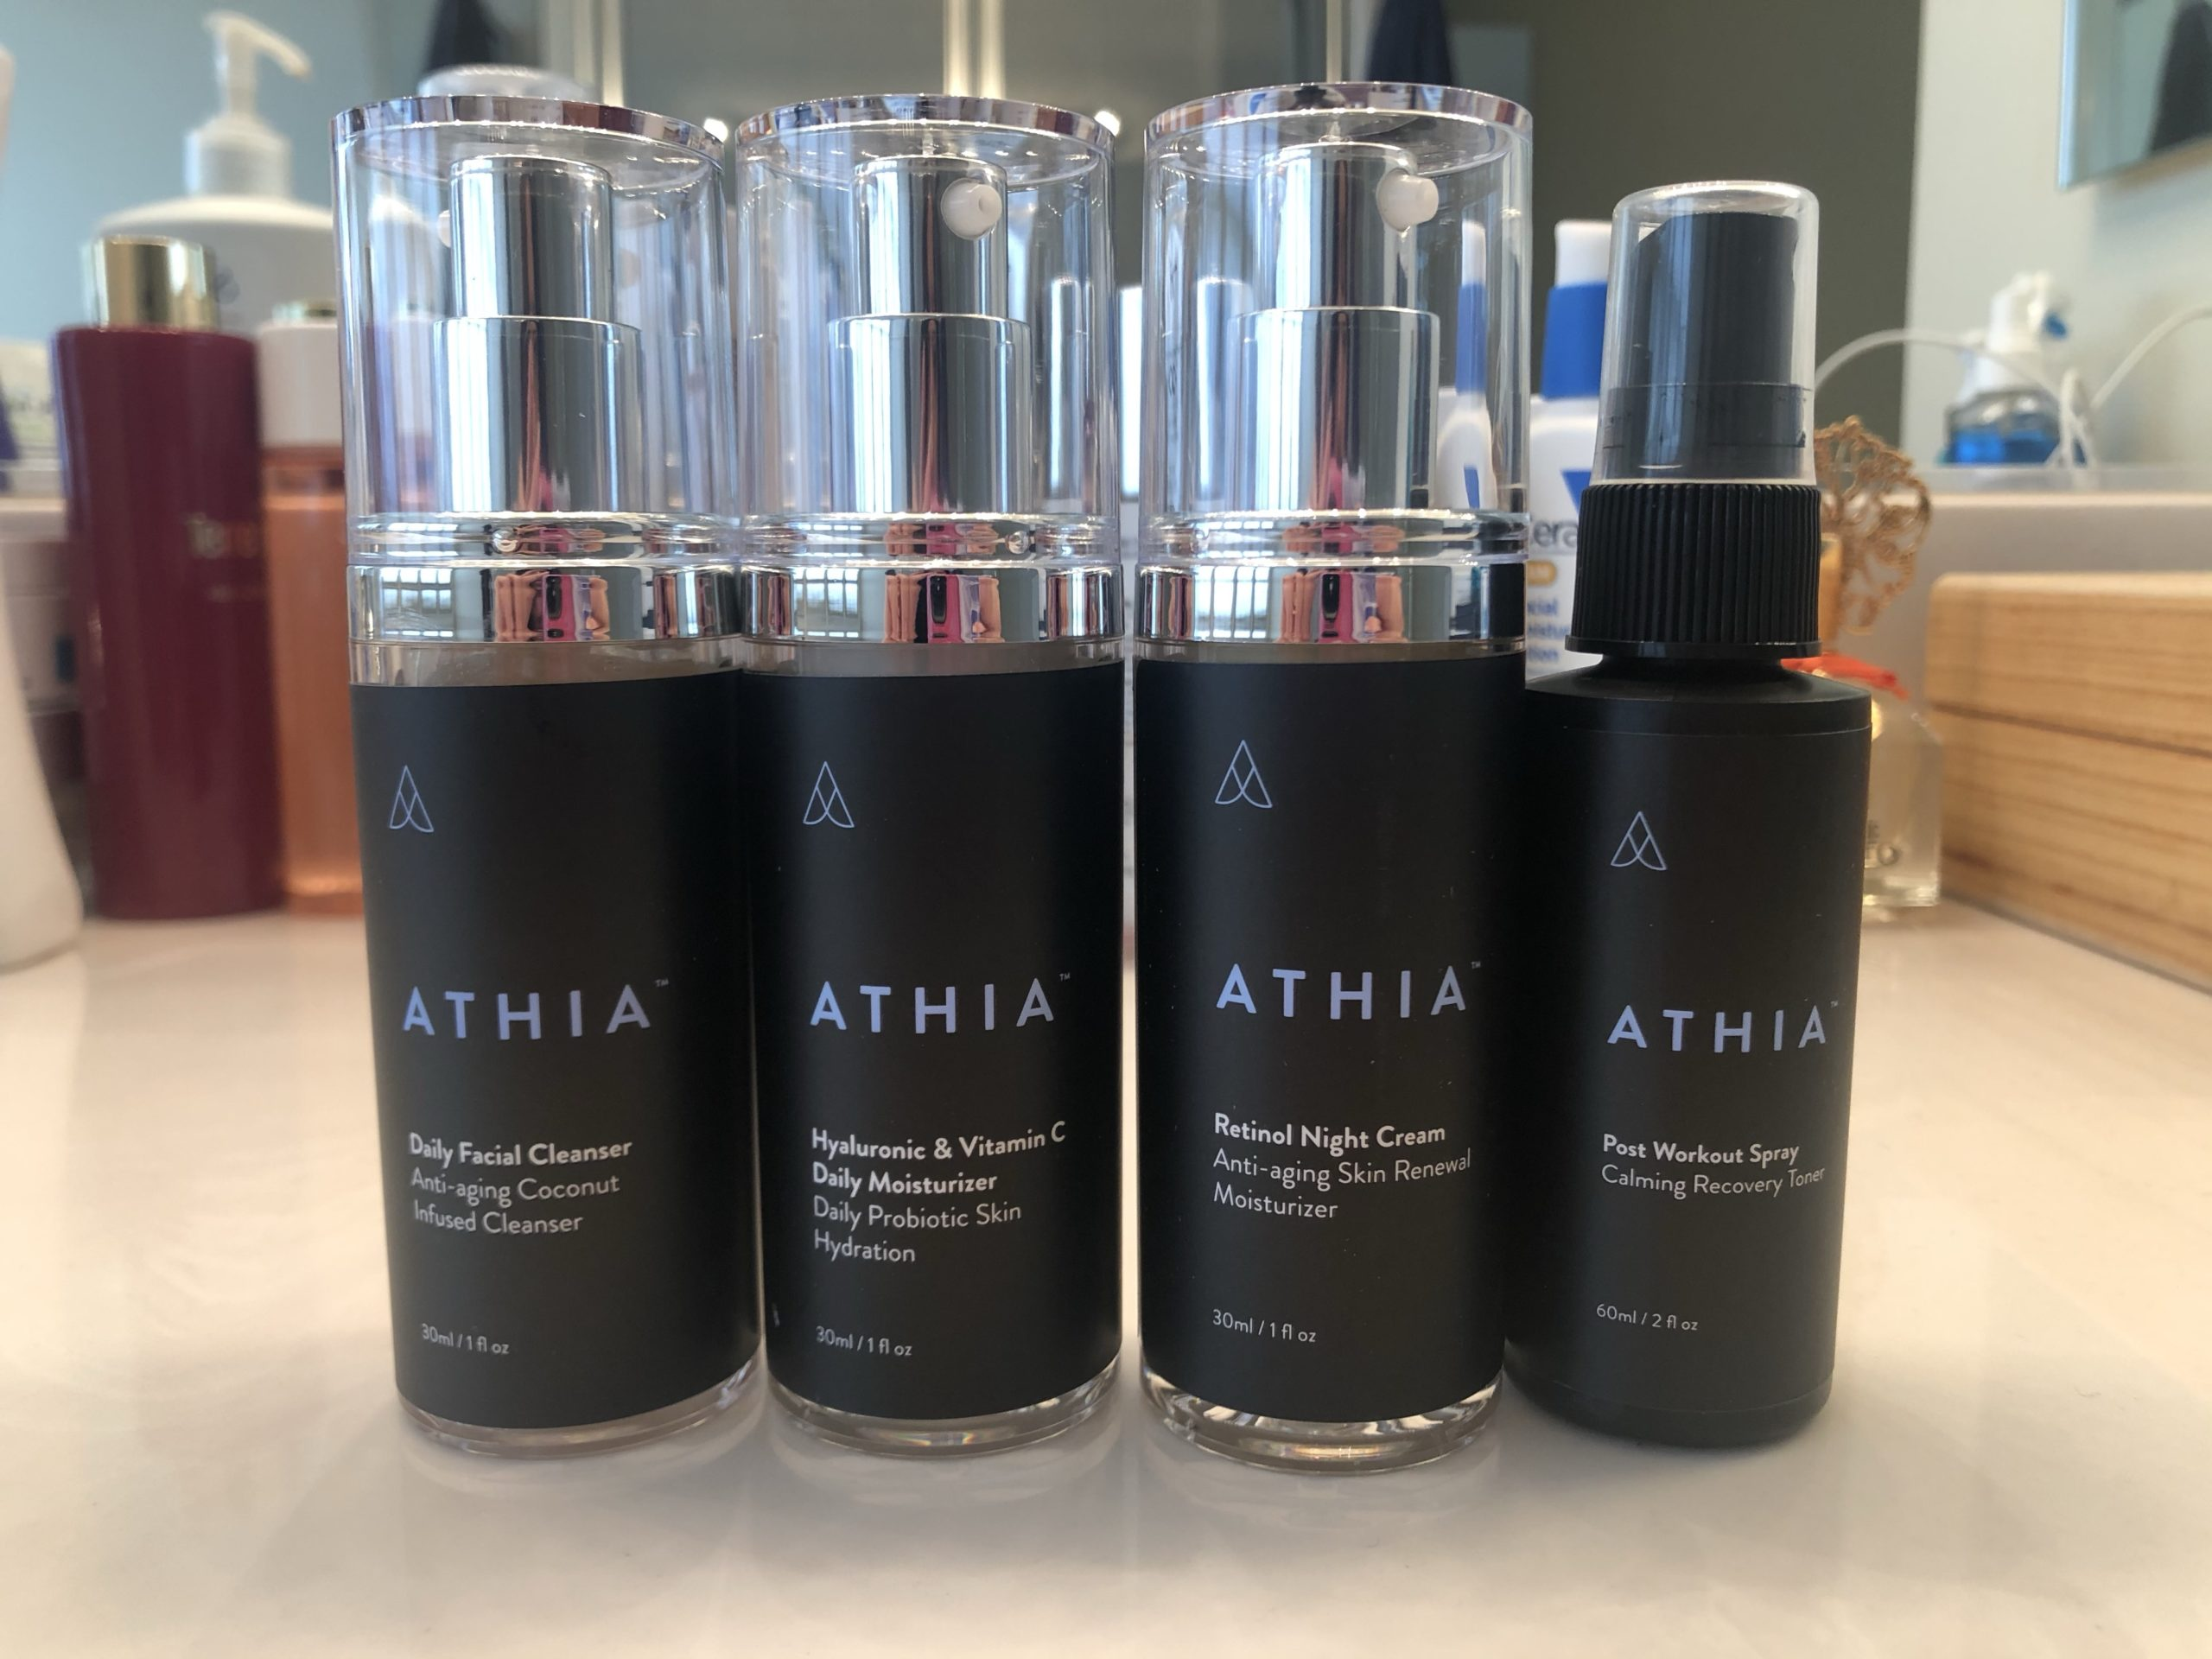 4 athia products